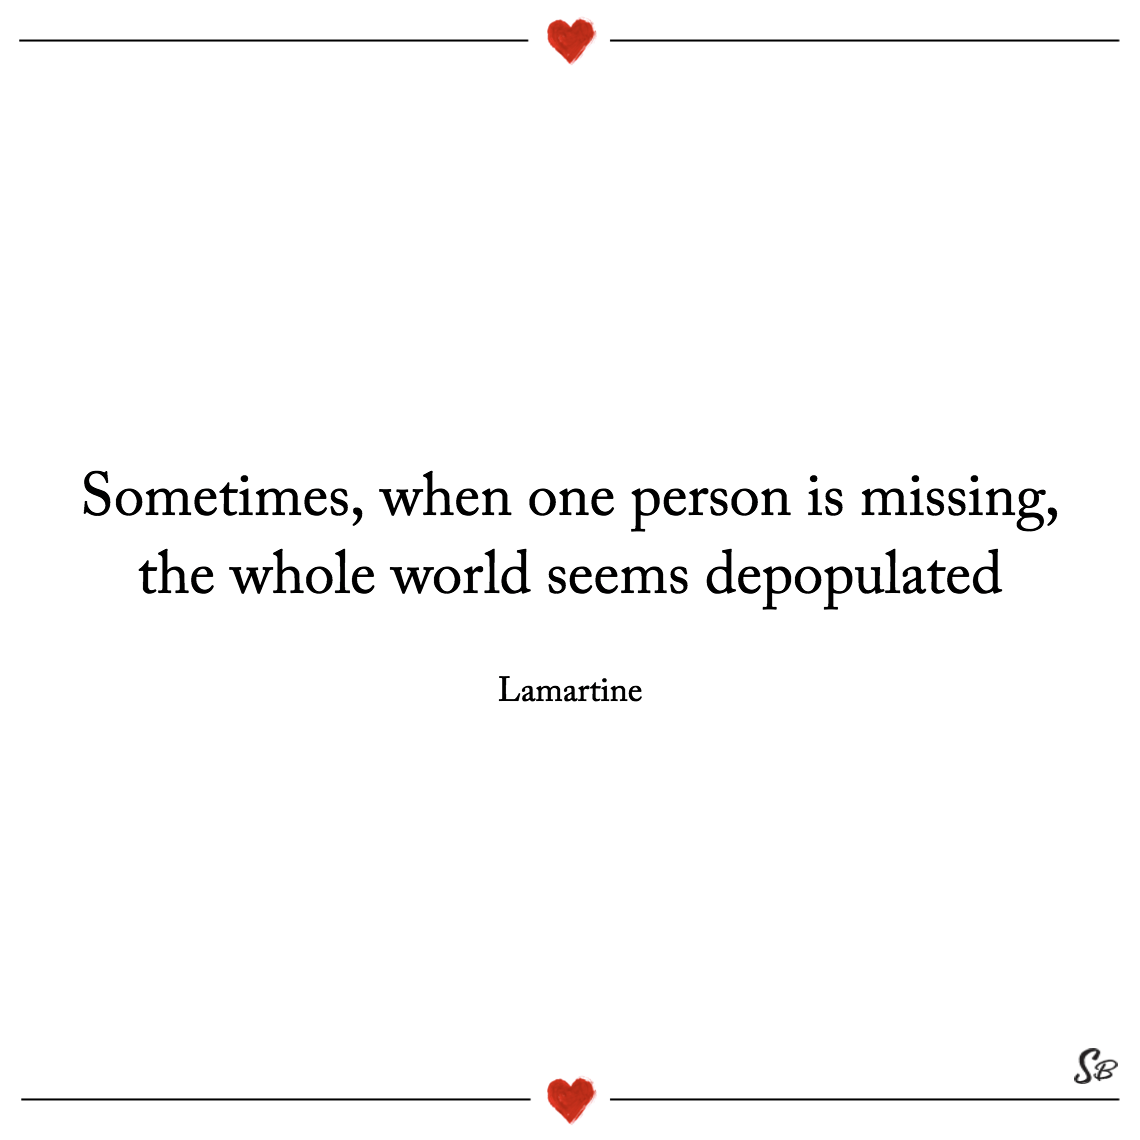 Sometimes, when one person is missing, the whole world seems depopulated. lamartine